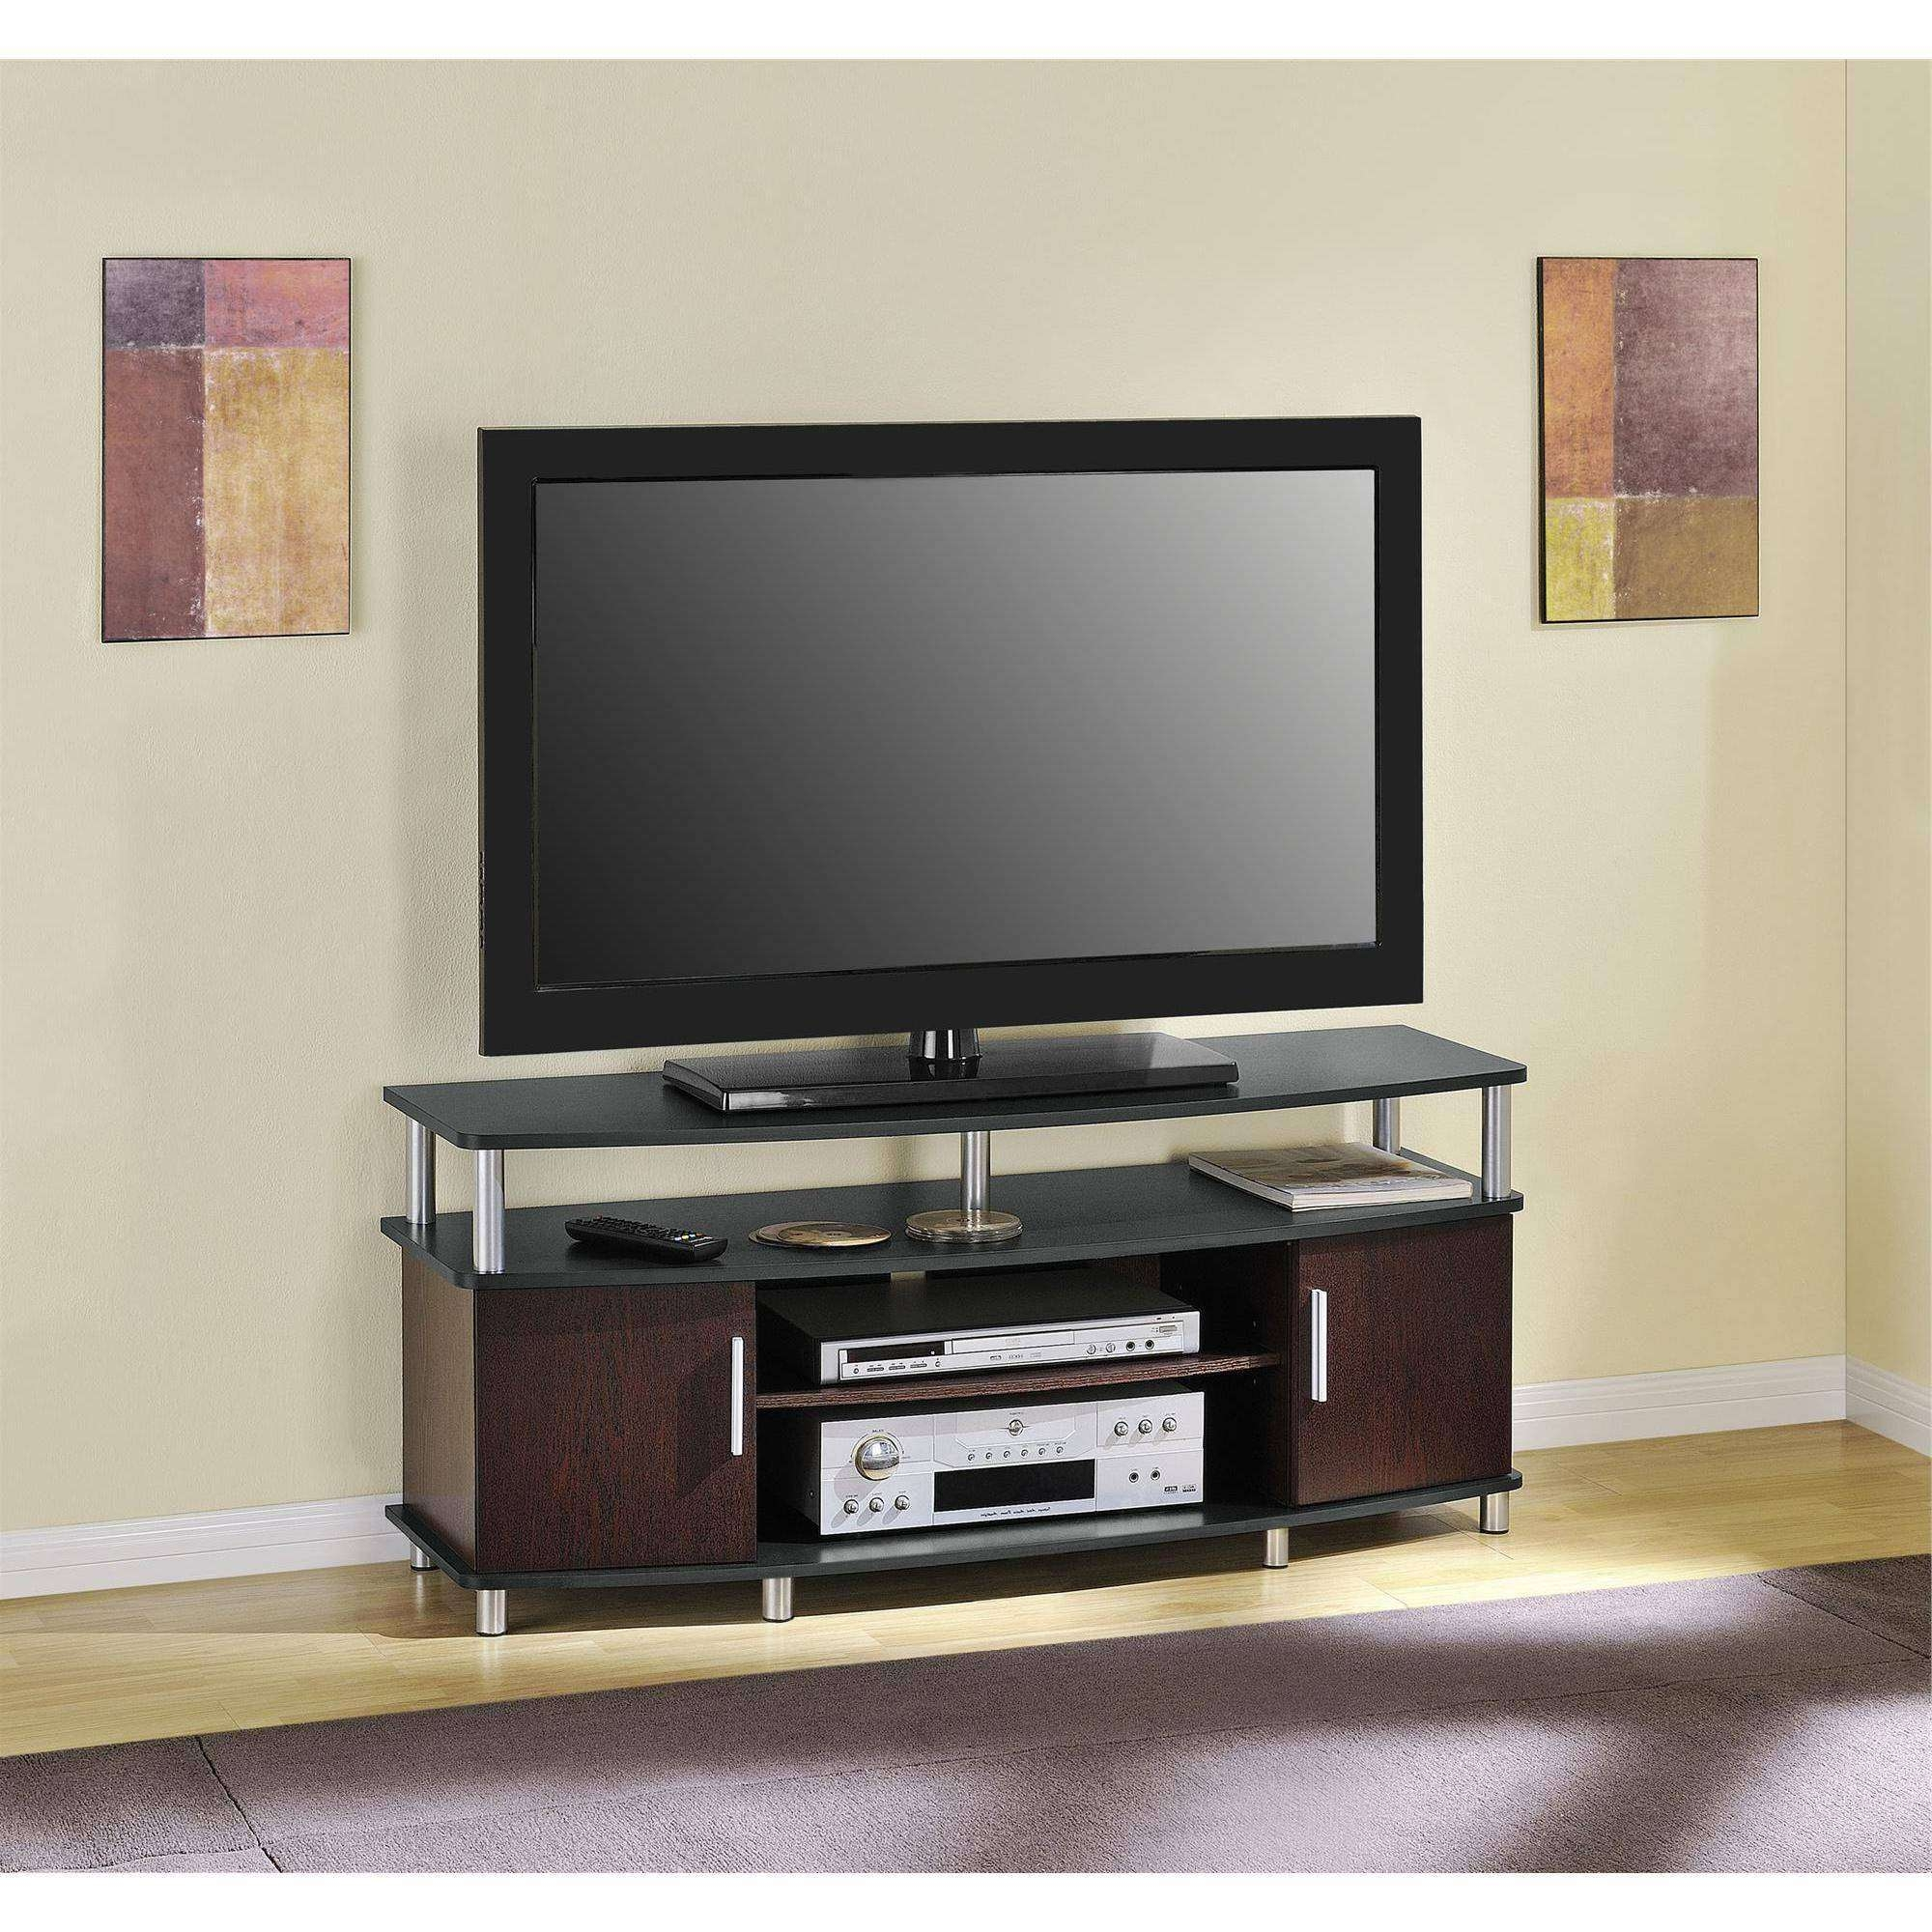 Fancy Tv Stands For 60 Inch Flat Screens 50 On Modern Home Decor Regarding Fancy Tv Stands (View 6 of 15)